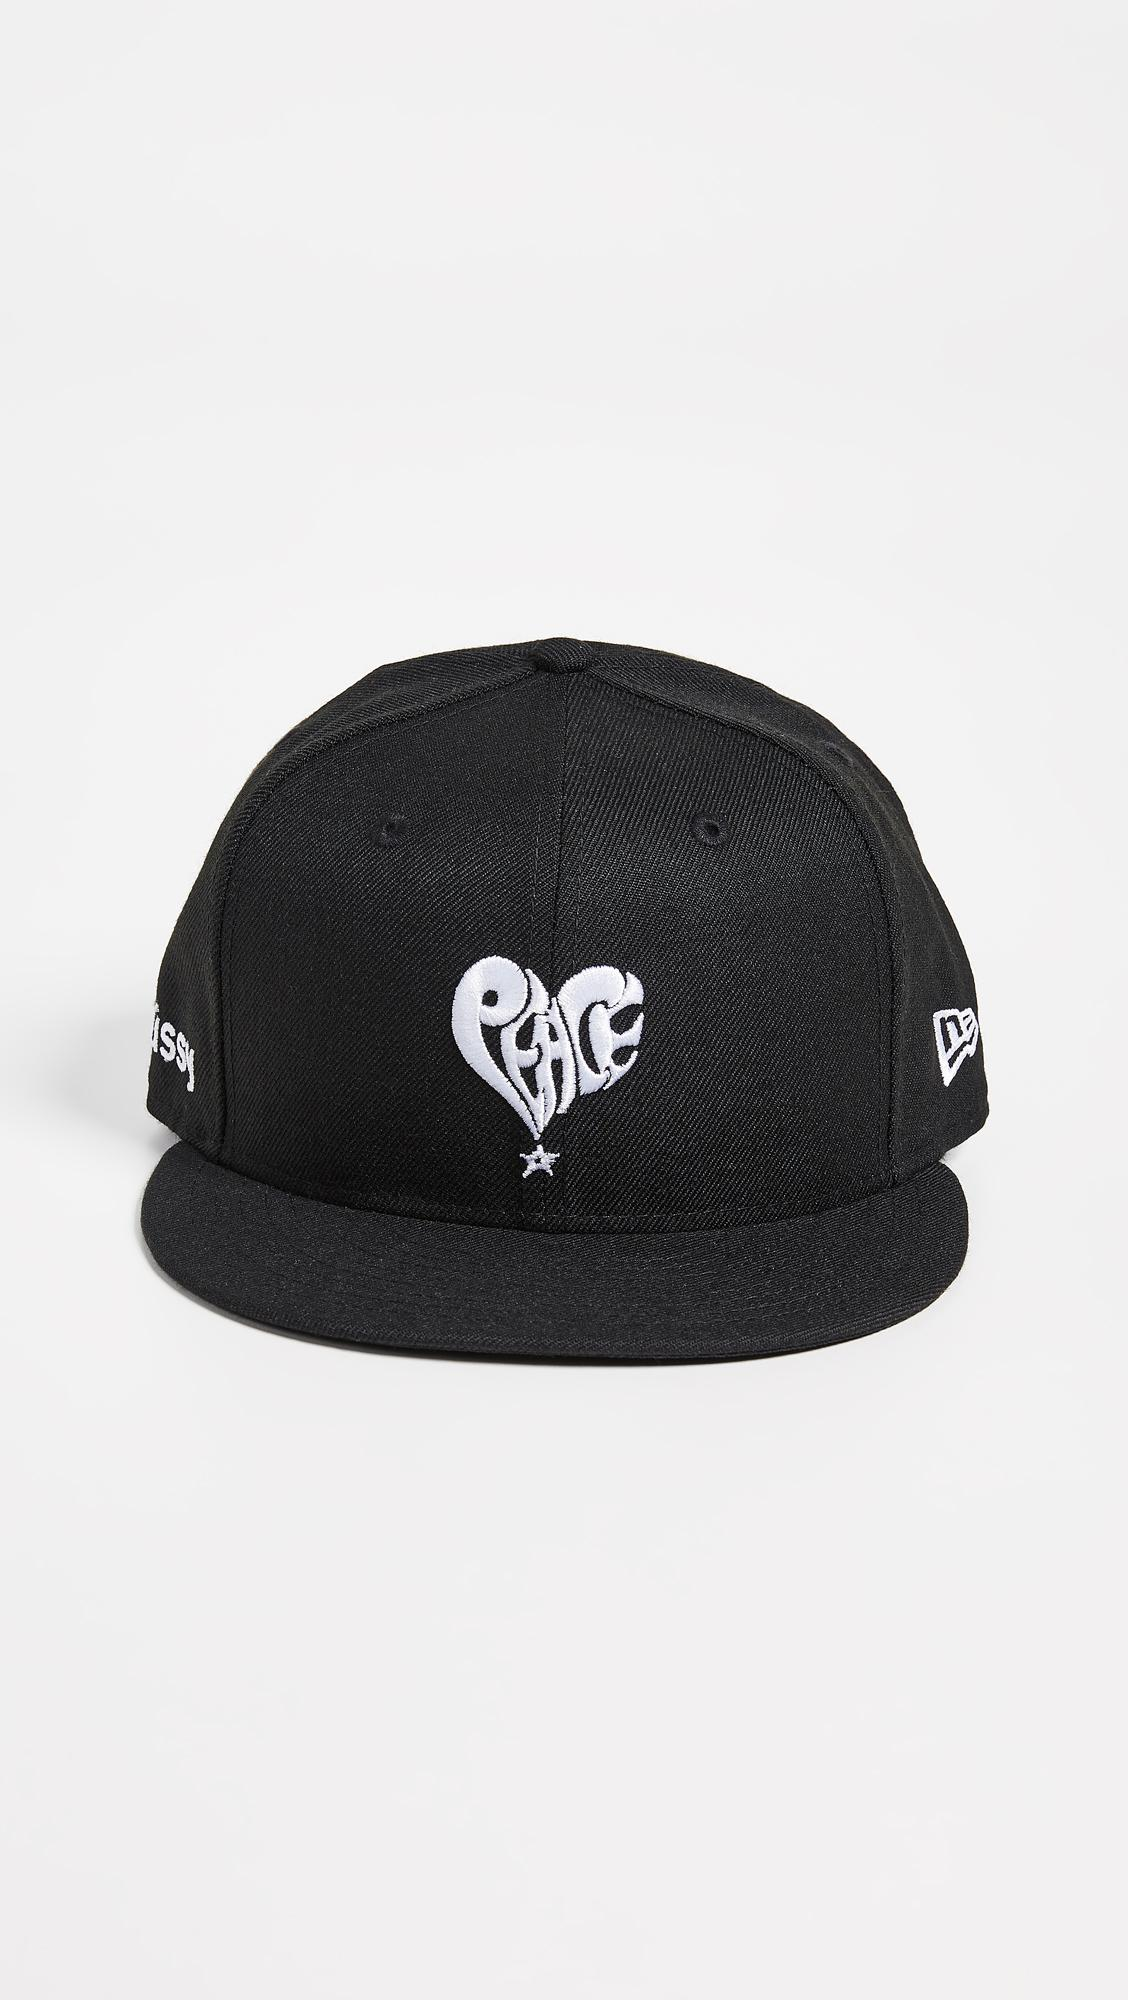 Lyst - Stussy Peace New Era Cap in Black for Men 37b780a1f7fc